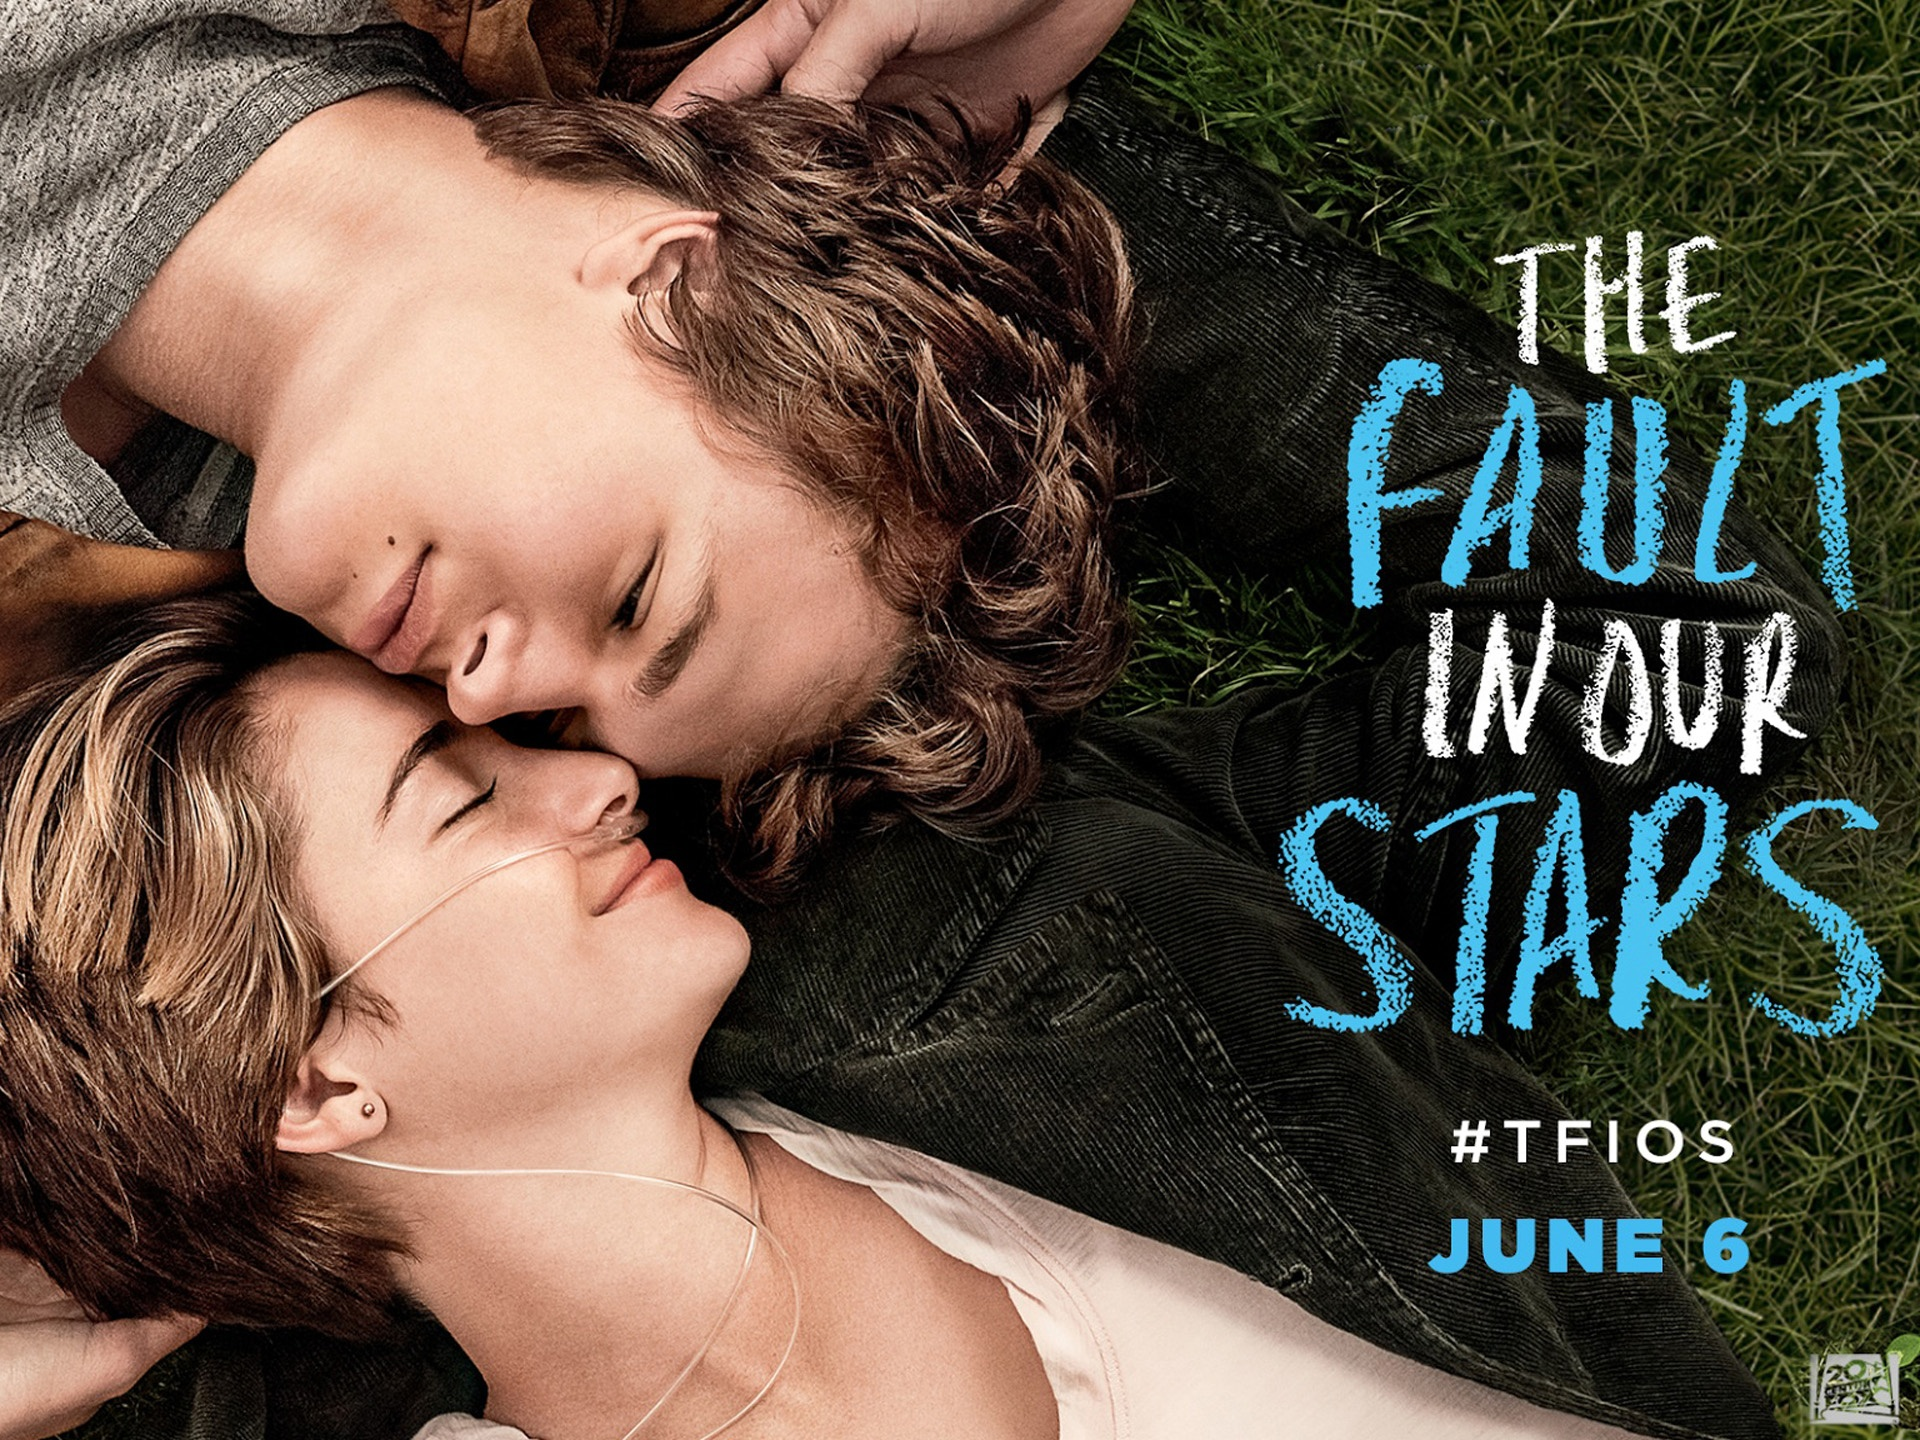 Adapted from 'The Fault In Our Stars'.